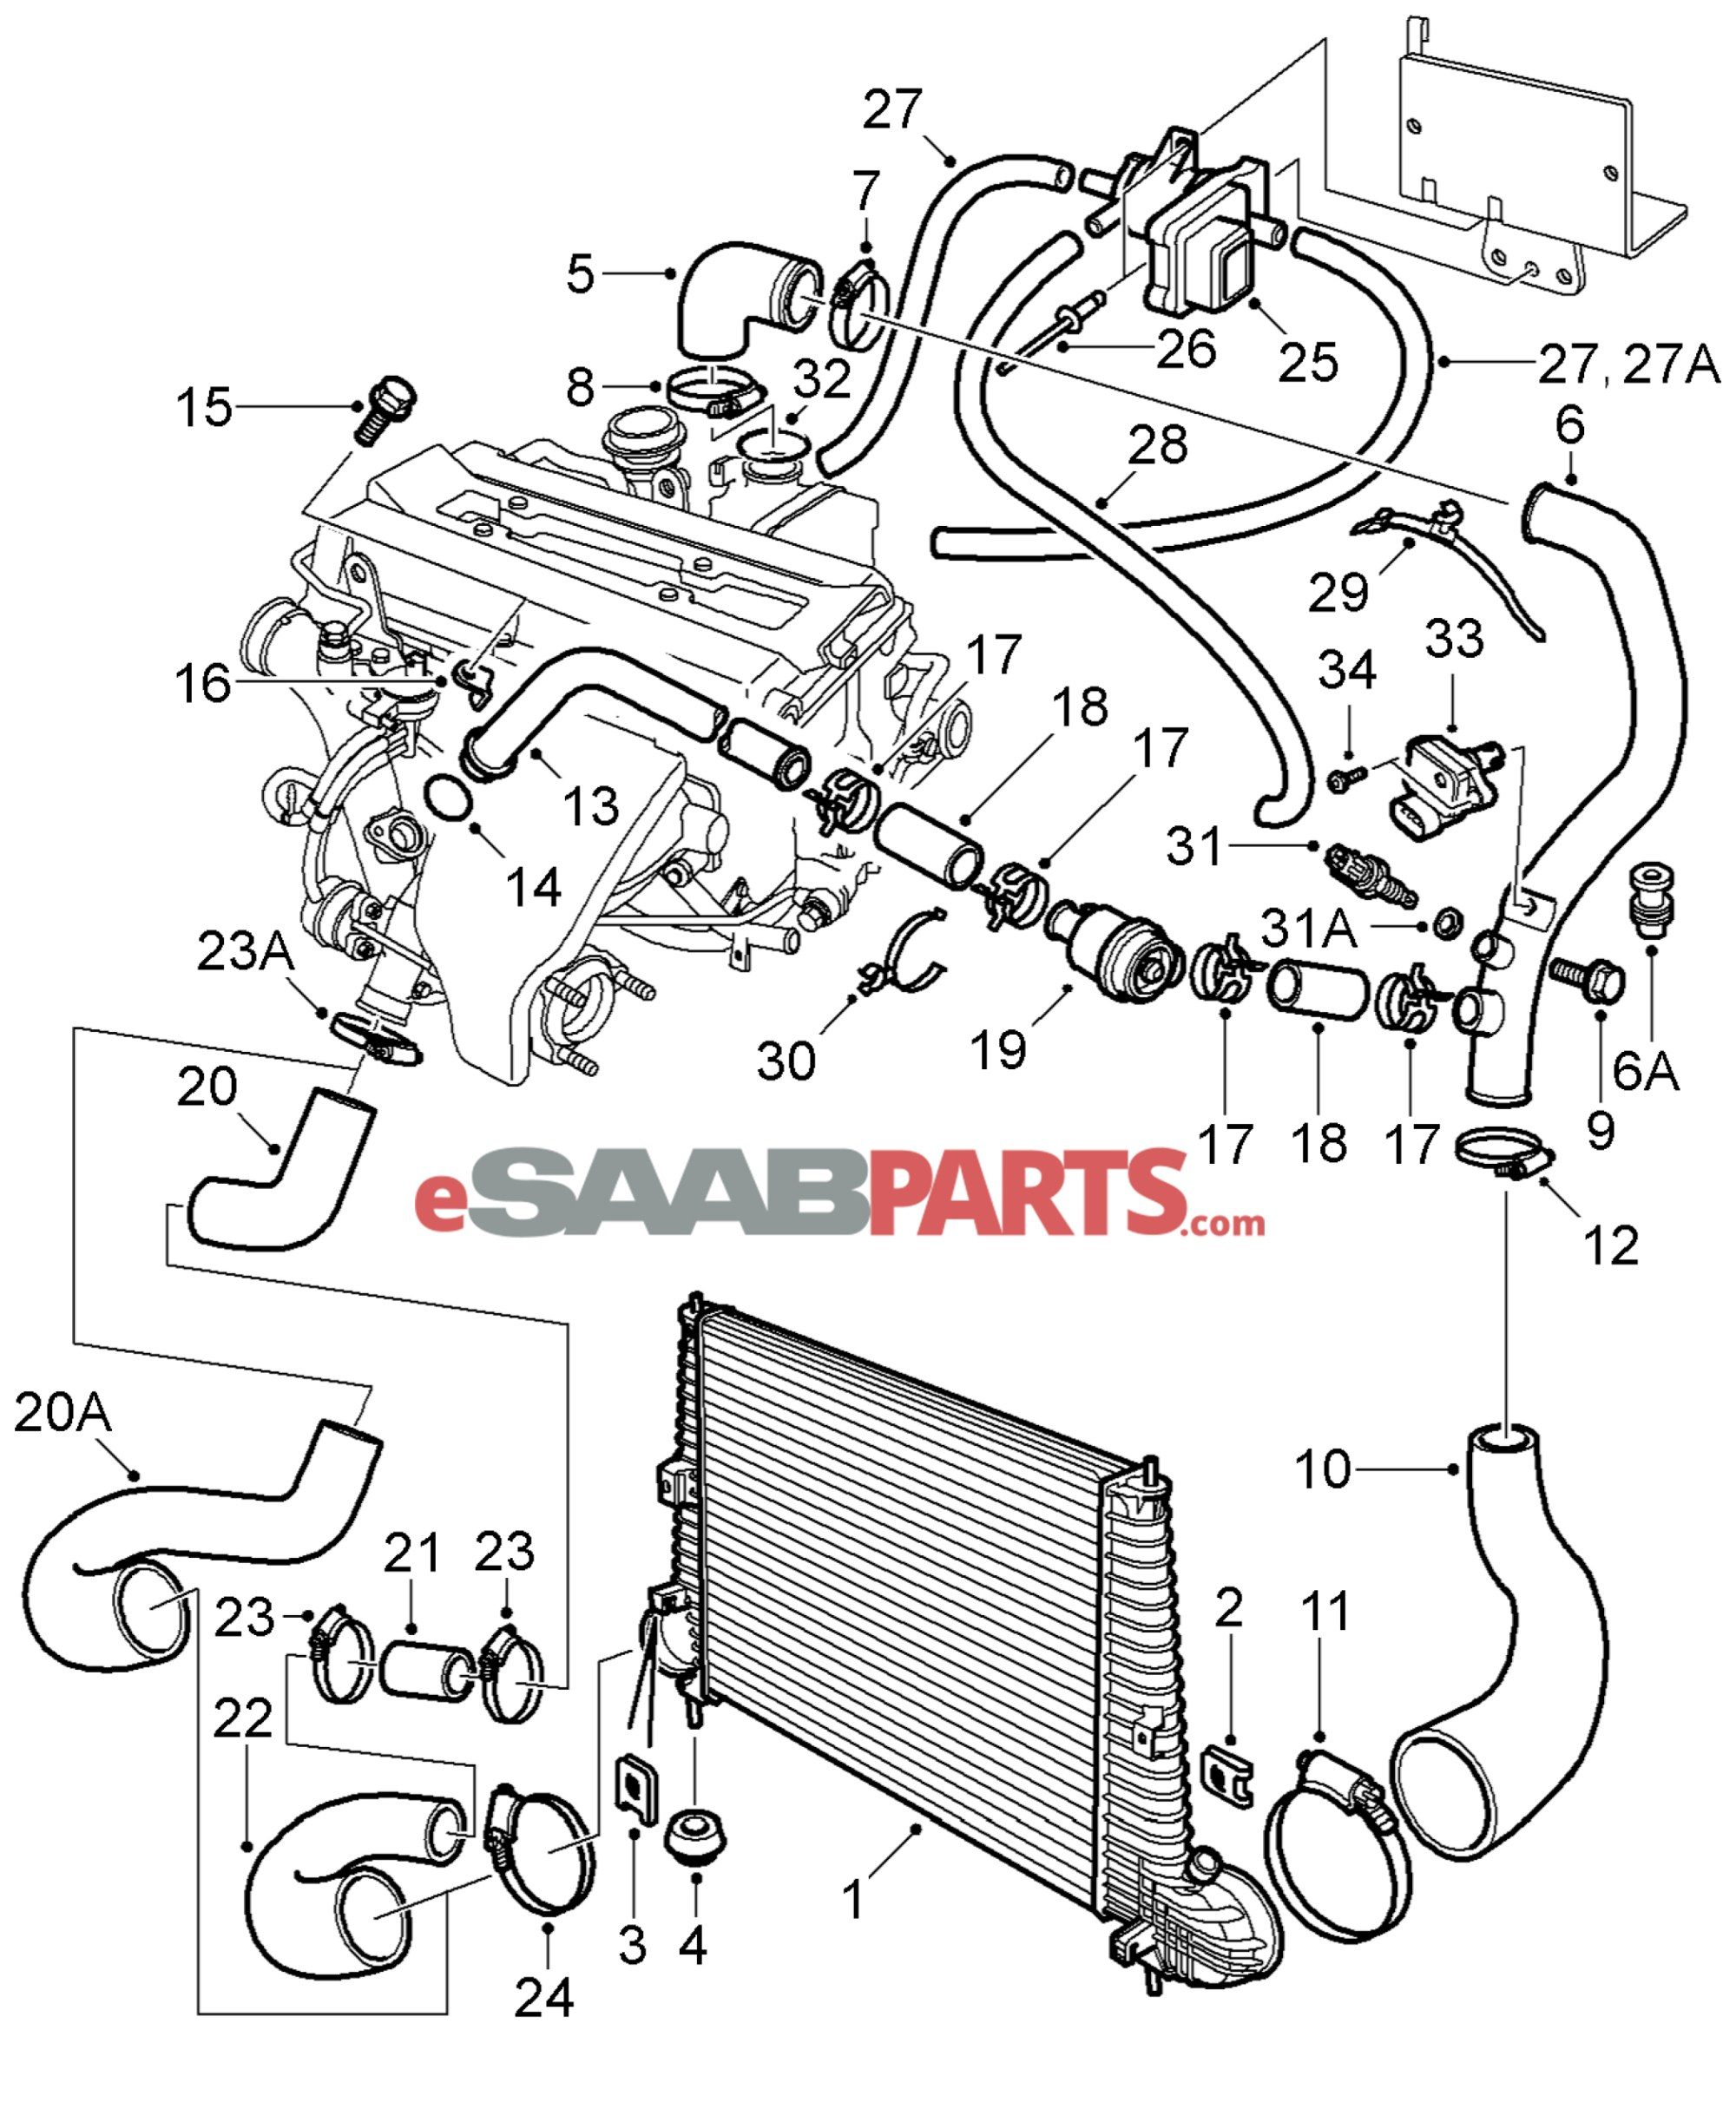 hight resolution of 2002 saab 9 5 2 3 engine diagram